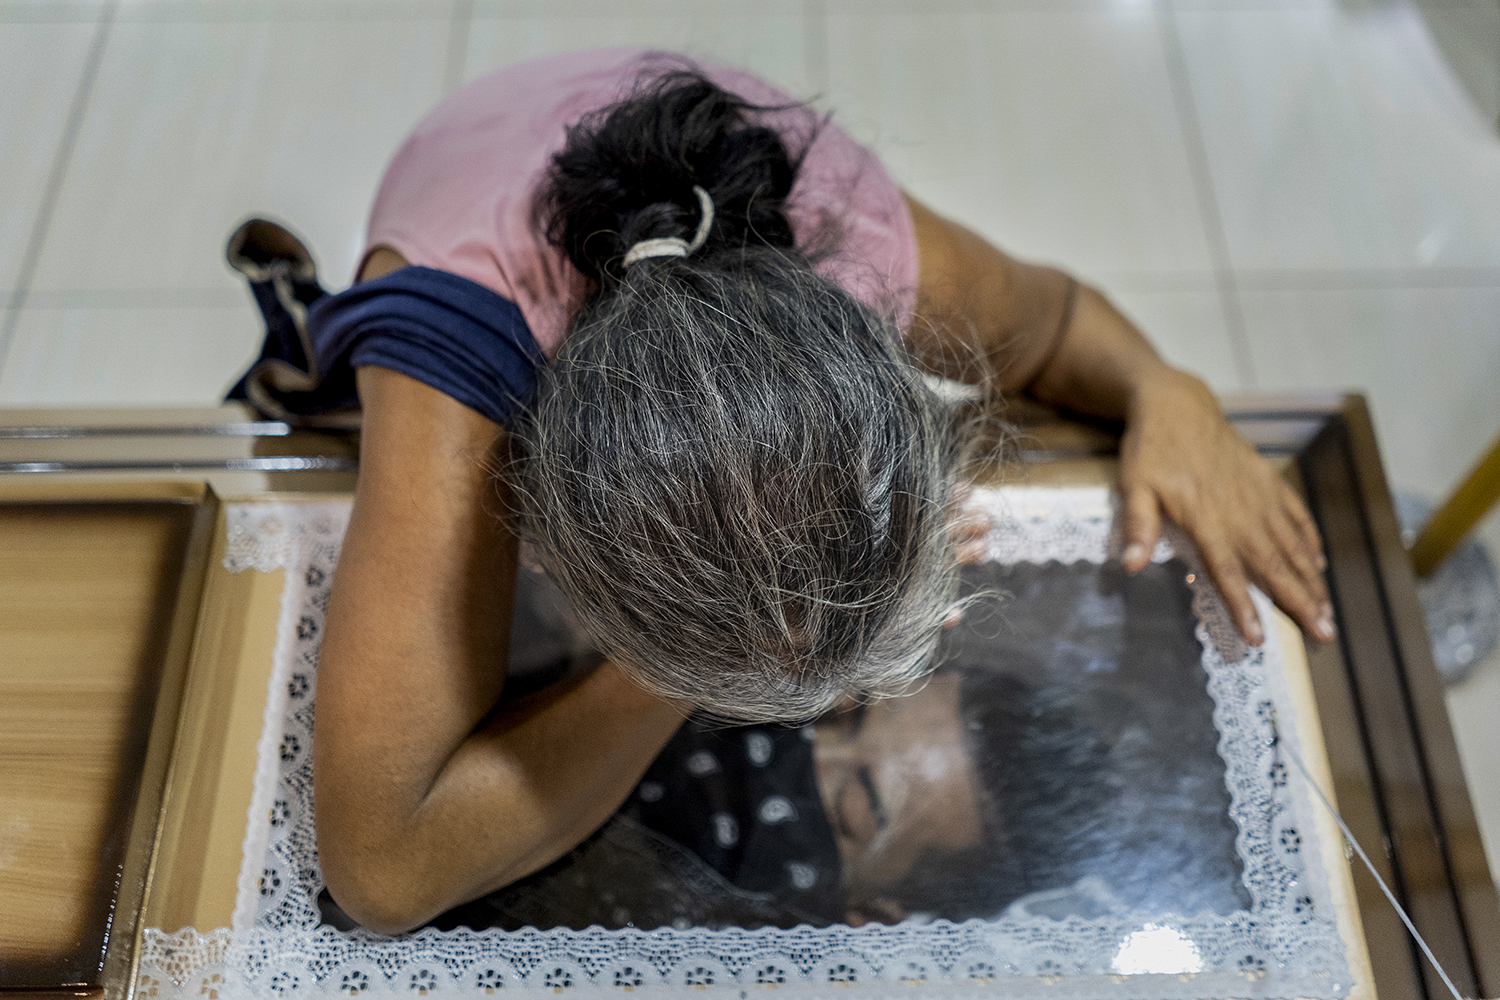 Gloria, whose last name has been omitted to protect her identity, mourns her 25-year-old son, Stanley, at his wake in San Martín, San Salvador, on Nov. 7, 2018. Stanley's face is covered by a bandana after he was strangled by members of La 18 for not fulfilling the missions the gang asked of him, his mother said. He is also survived by his wife and 6-year-old son.